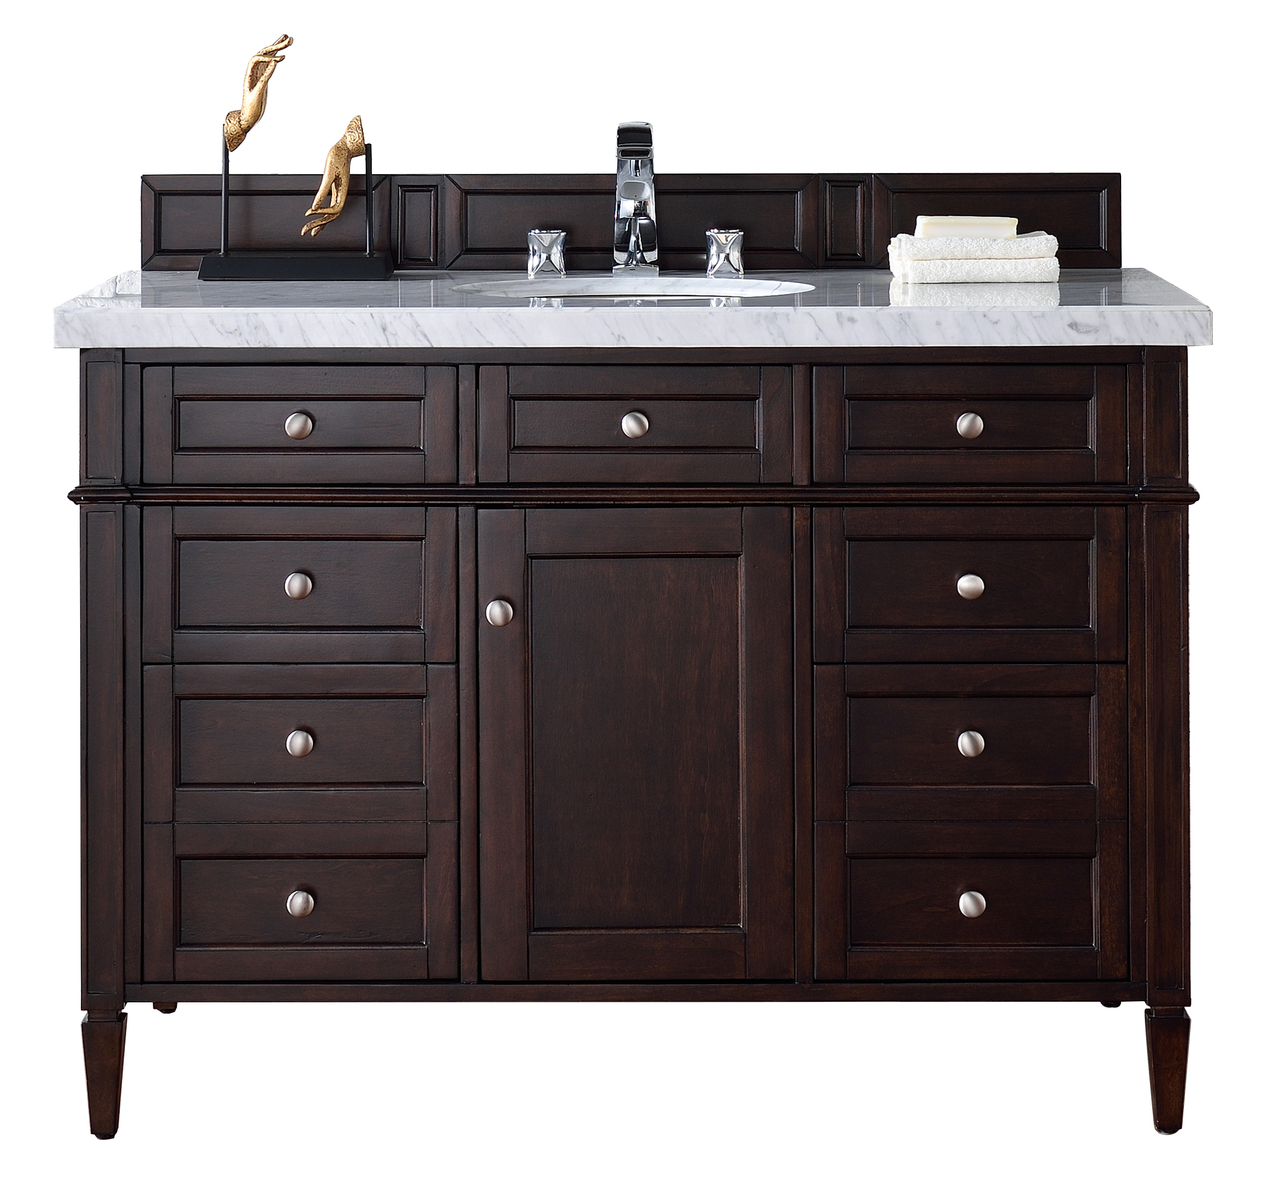 Contemporary 48 inch single bathroom vanity mahogany for Bathroom vanity tops